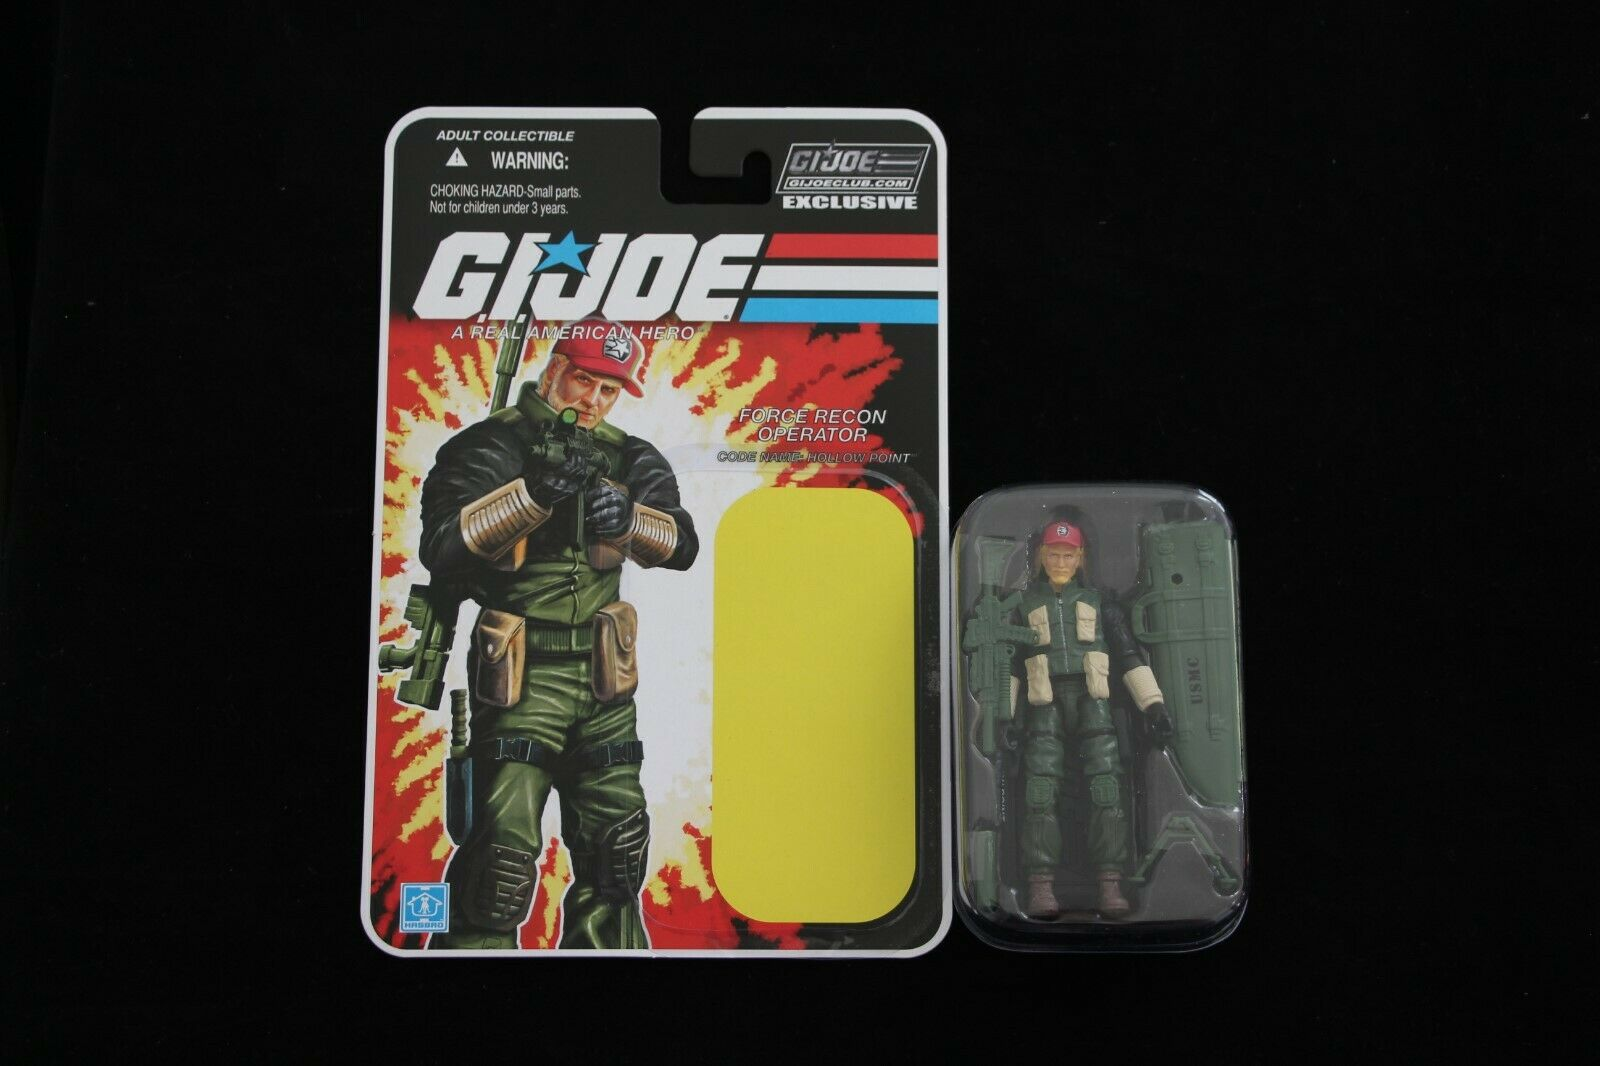 GI Joe 2018 Collector's Club FSS 7.0 Hollow Point & Correct Stand New Complete